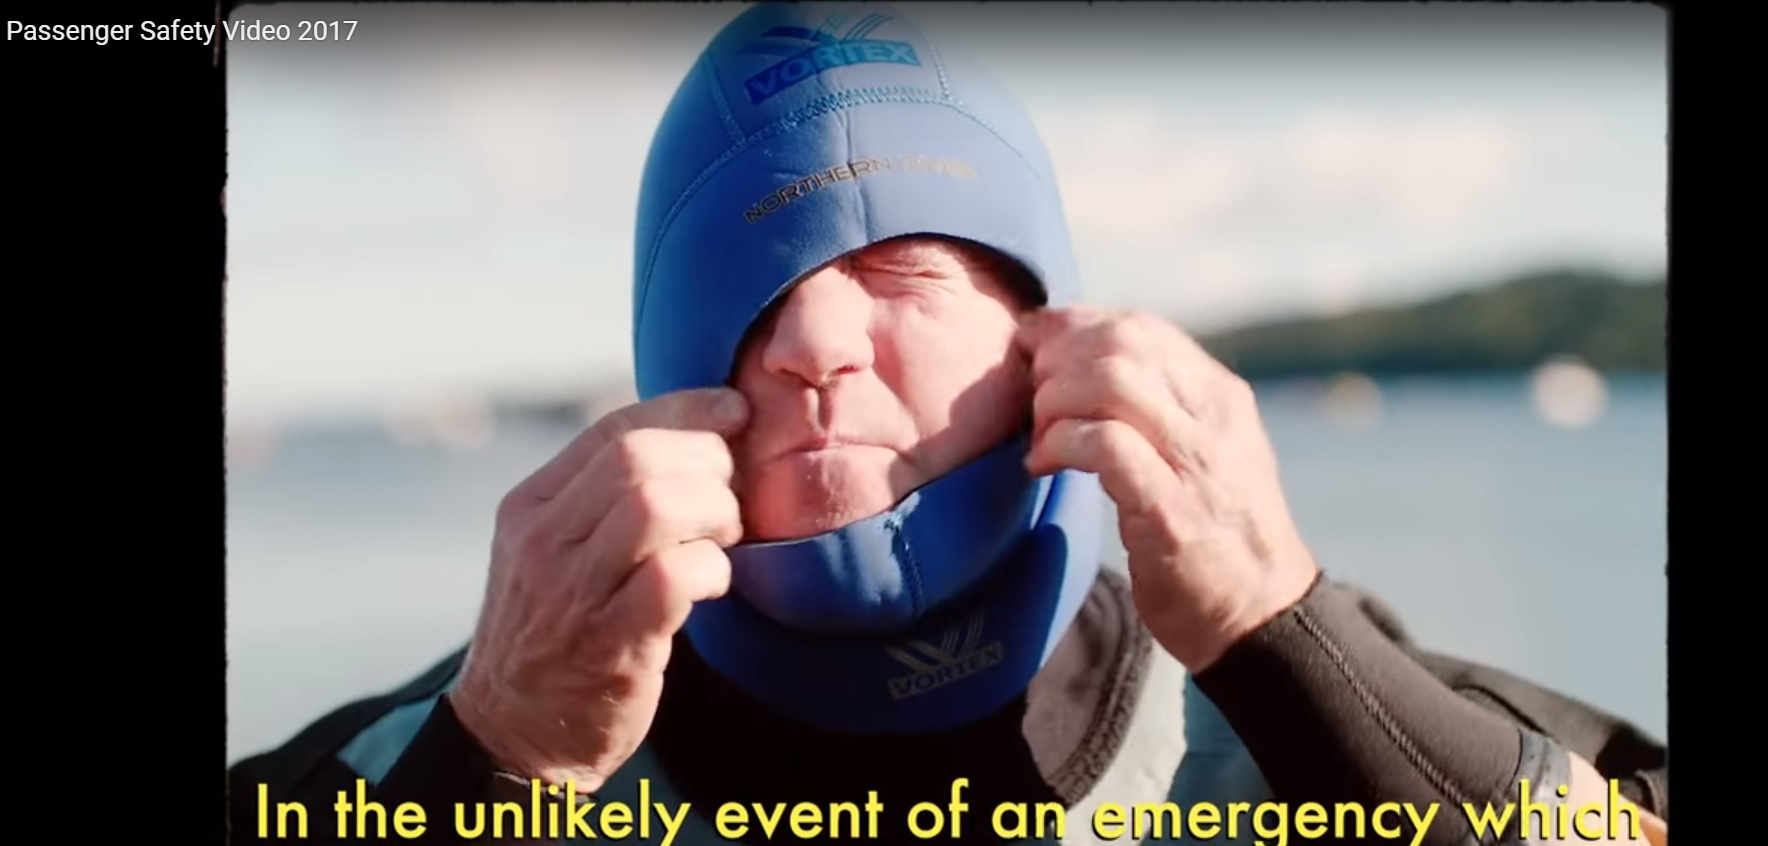 Ferry Safety video